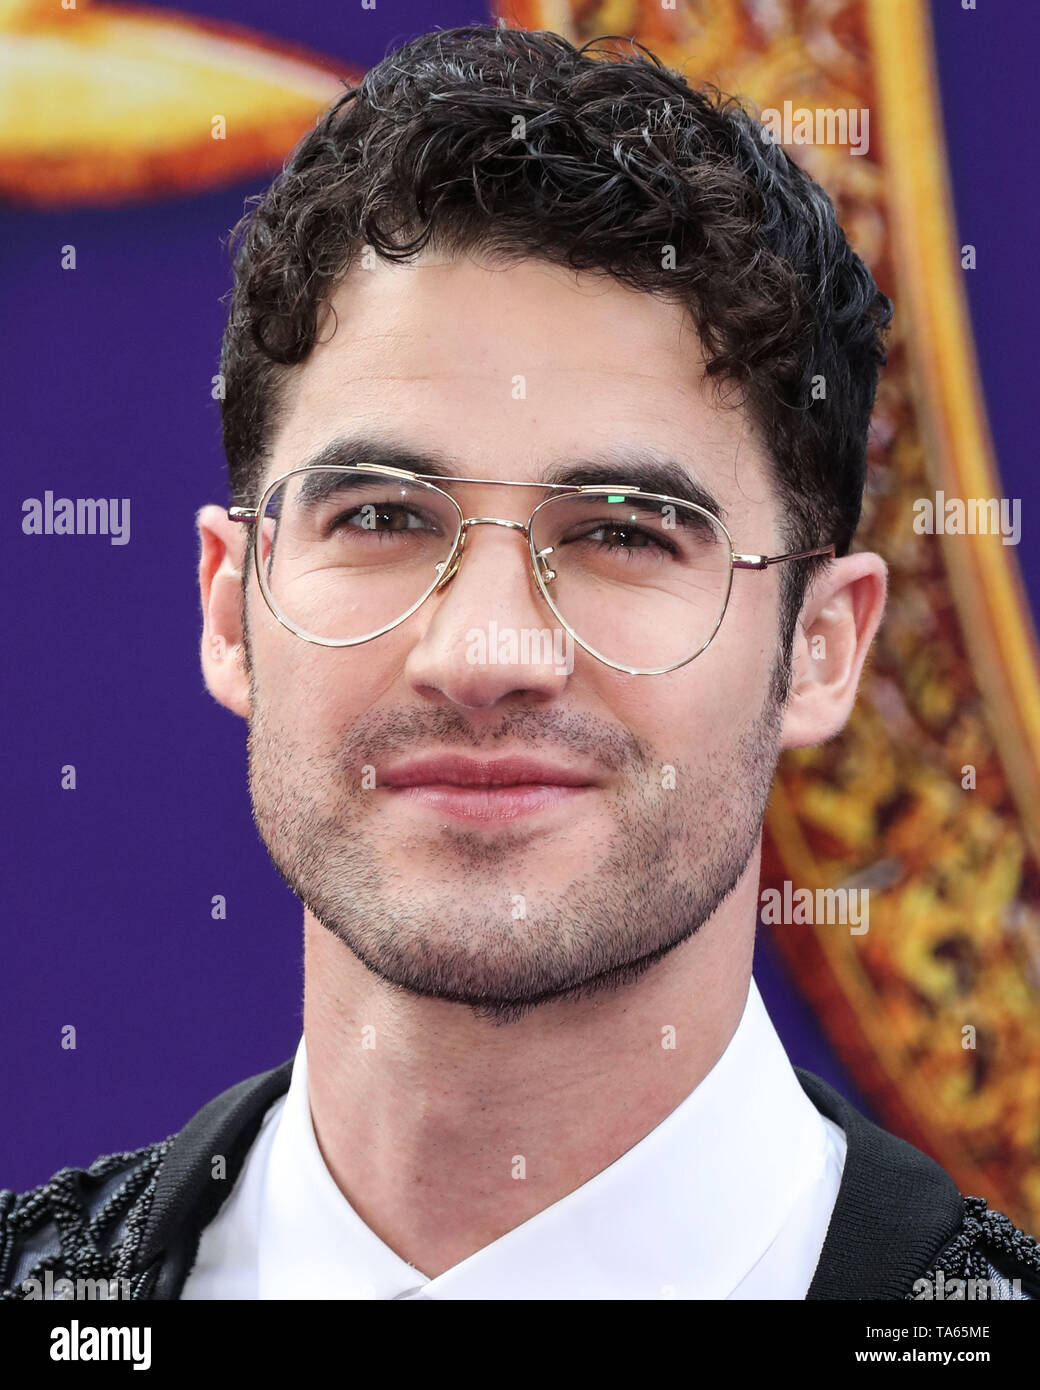 Hollywood, United States. 21st May, 2019. HOLLYWOOD, LOS ANGELES, CALIFORNIA, USA - MAY 21: Actor Darren Criss arrives at the World Premiere Of Disney's 'Aladdin' held at the El Capitan Theatre on May 21, 2019 in Hollywood, Los Angeles, California, United States. (Photo by Xavier Collin/Image Press Agency) Credit: Image Press Agency/Alamy Live News - Stock Image